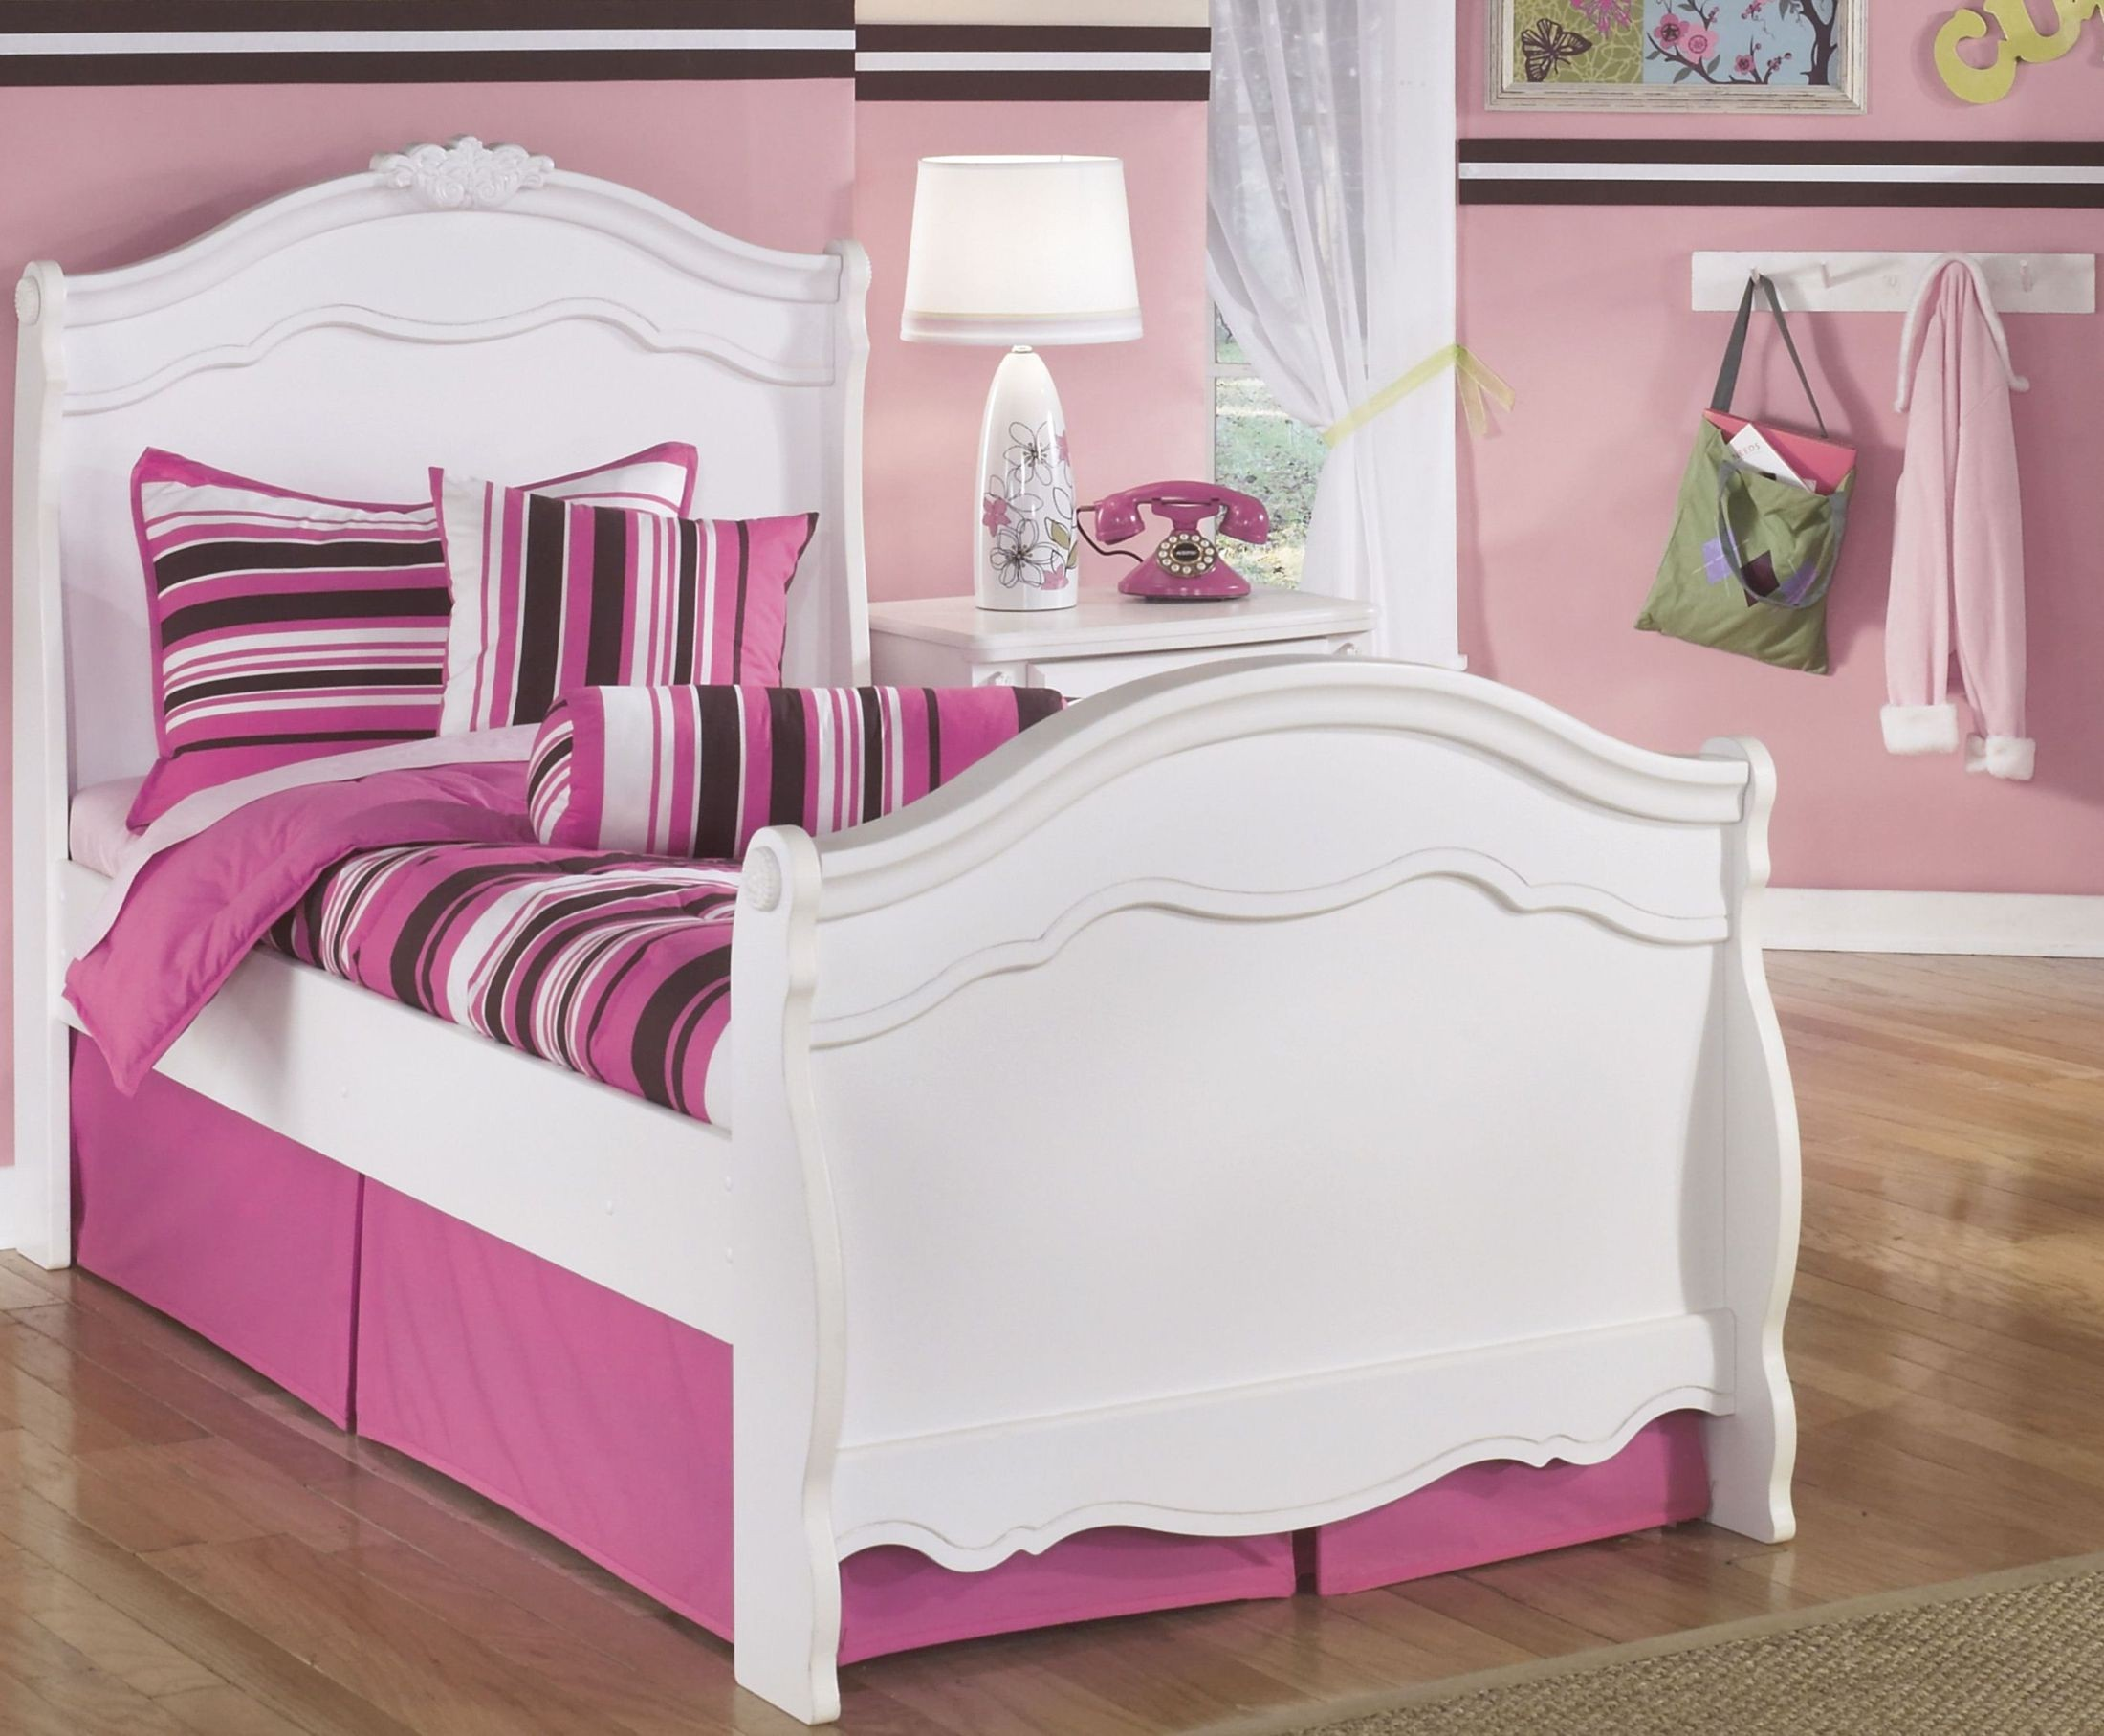 Exquisite Youth Sleigh Bedroom Set From Ashley B188 62n 63n 82n Coleman Furniture